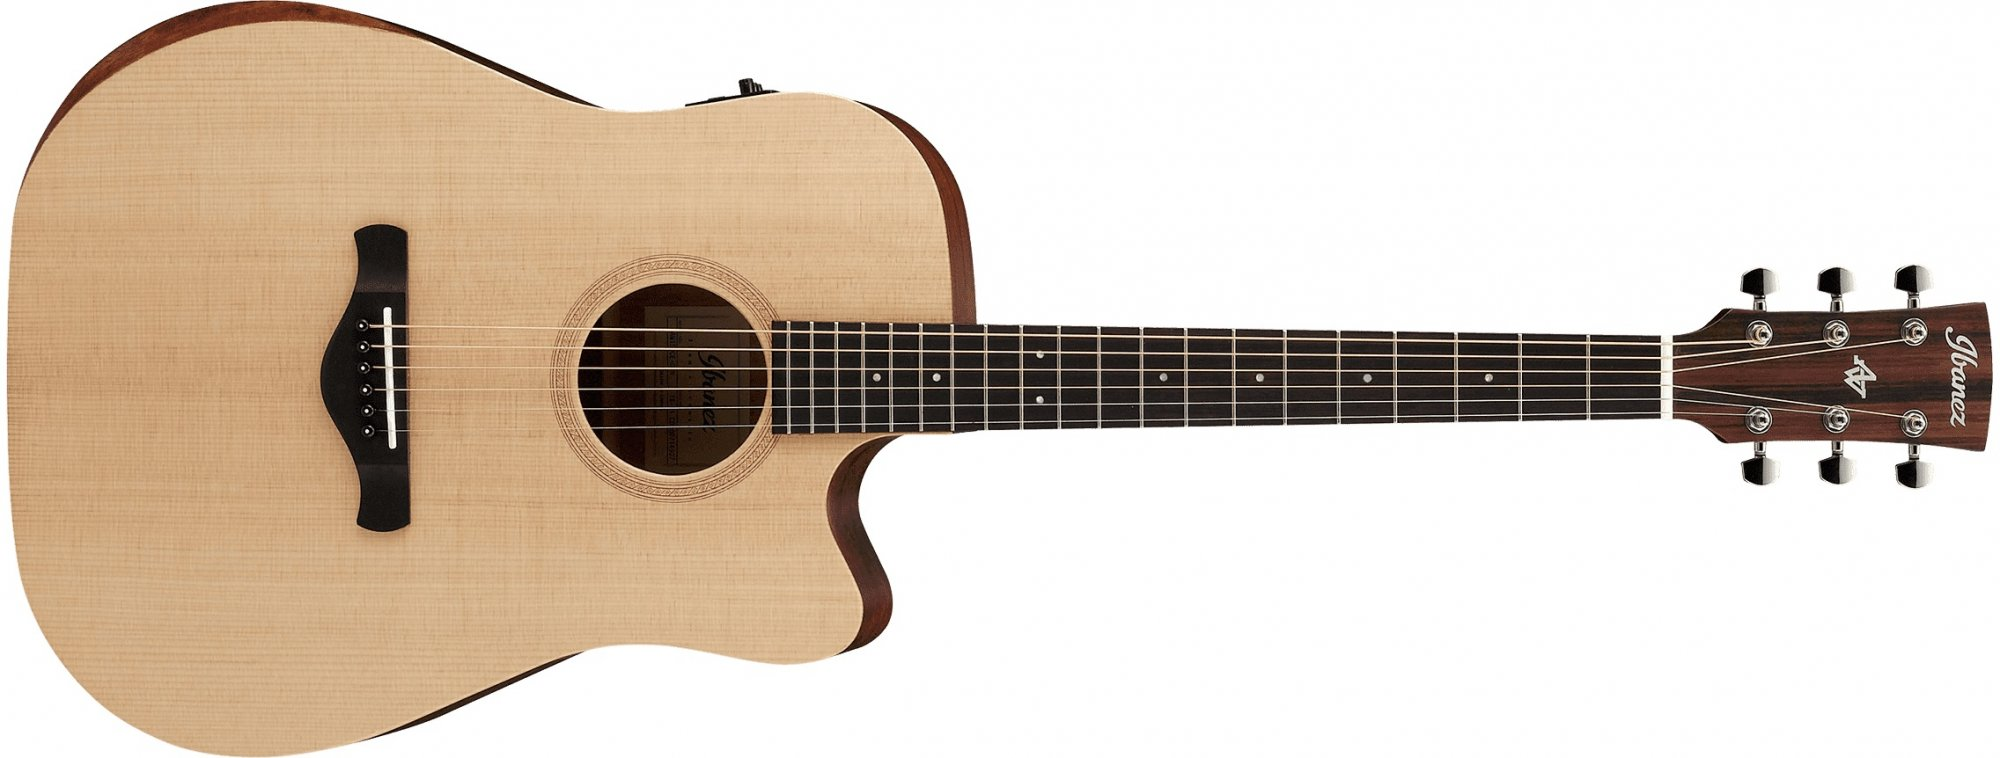 Ibanez AW150CE Acoustic Electric Guitar, Open Pore Natural